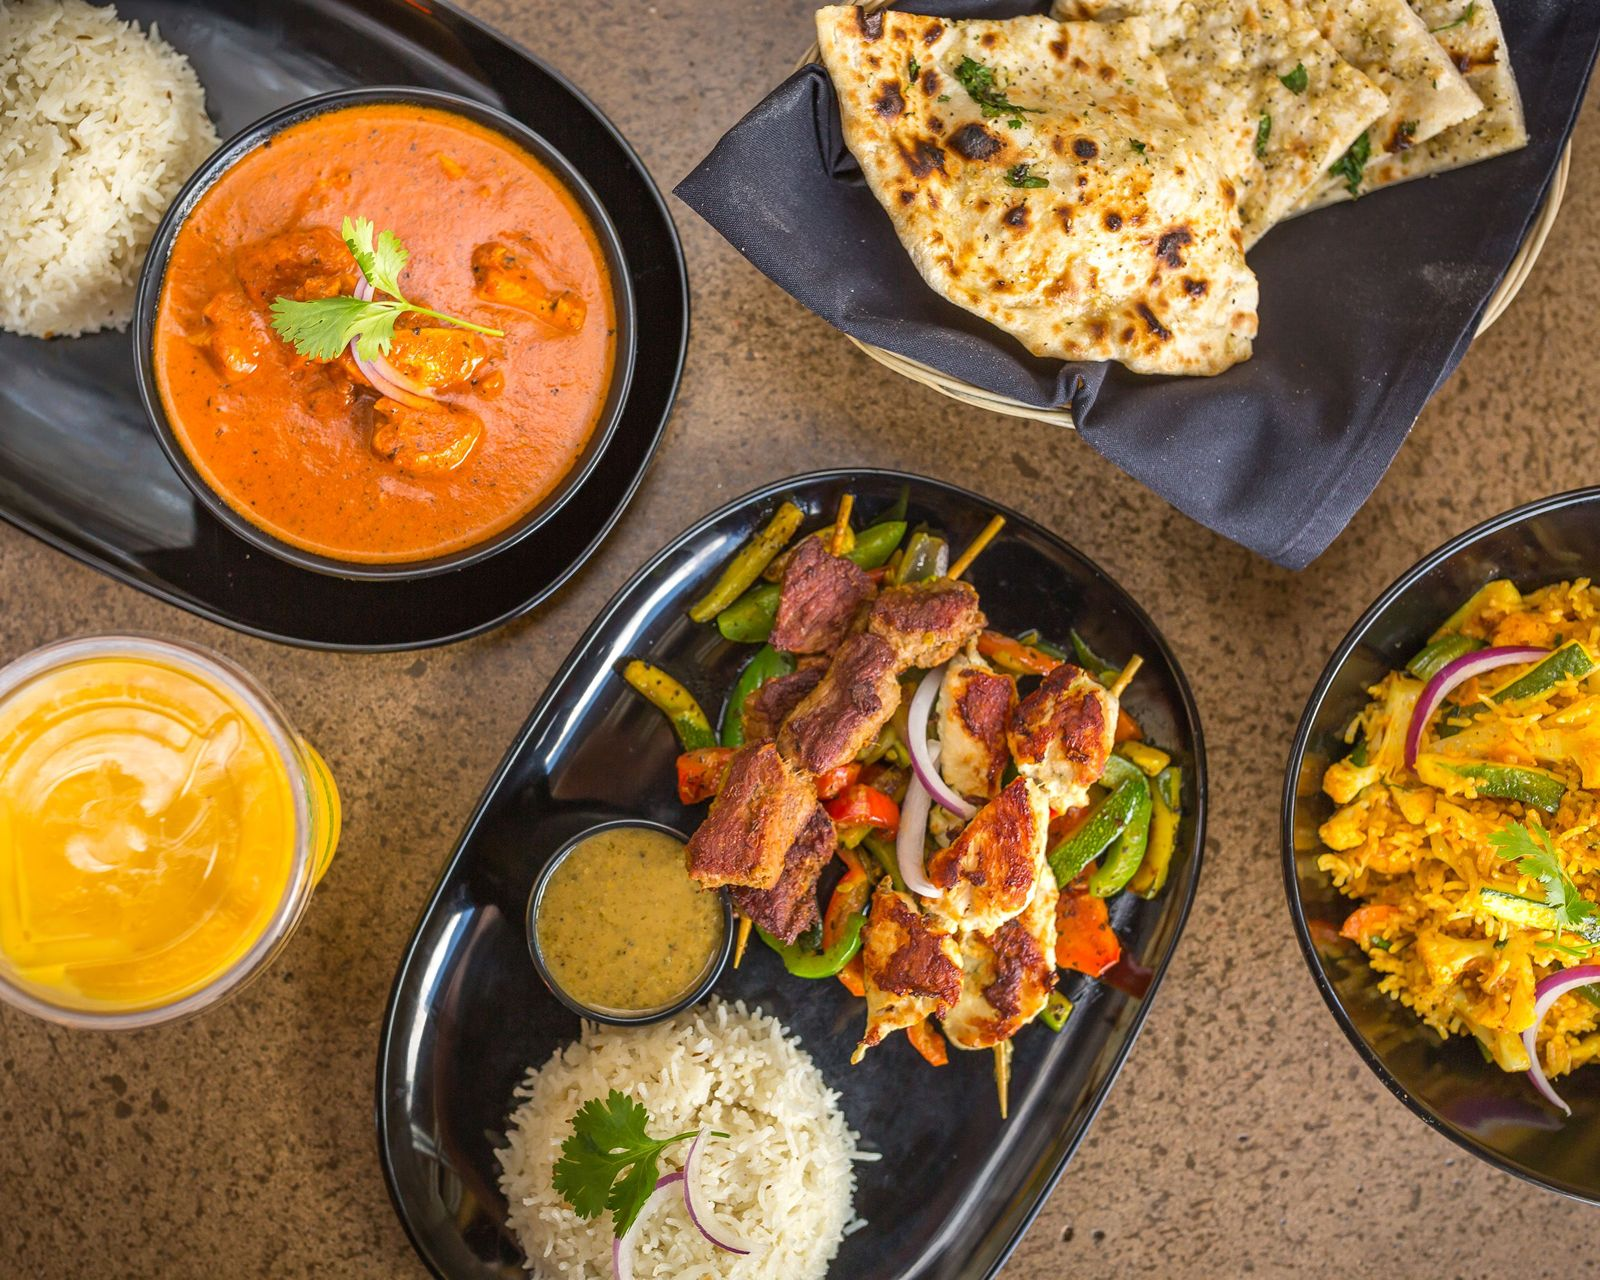 Tarka Prepares to Bring Fresh Flavorful Indian Food to Upper Kirby